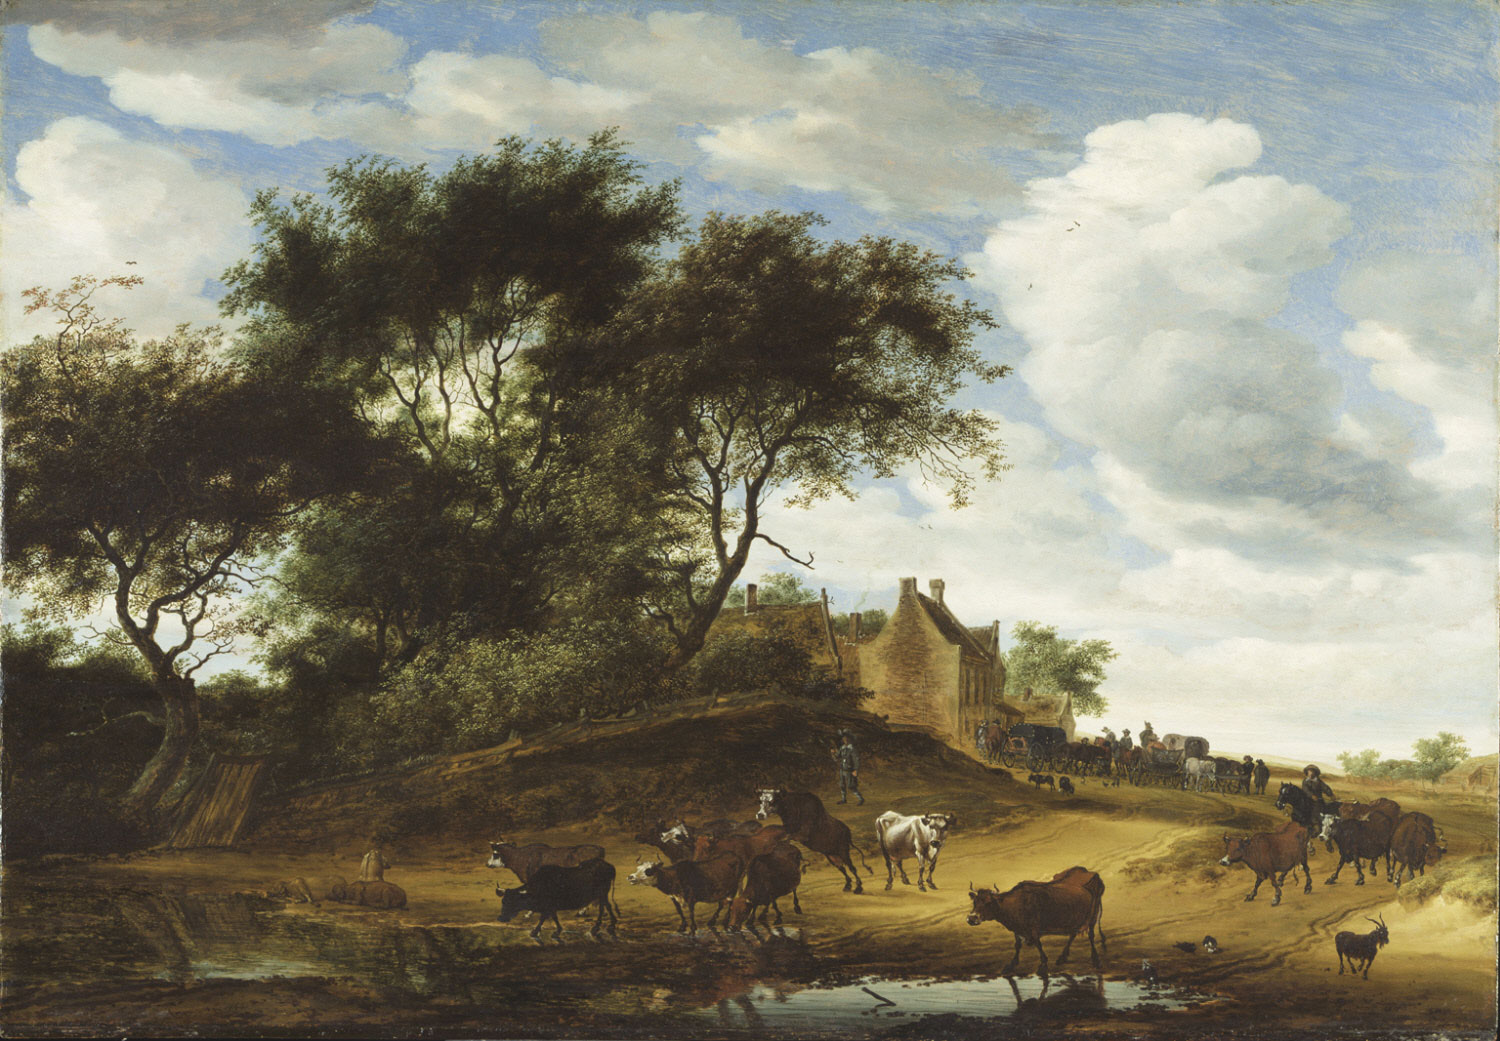 Landscape with Cattle and an Inn